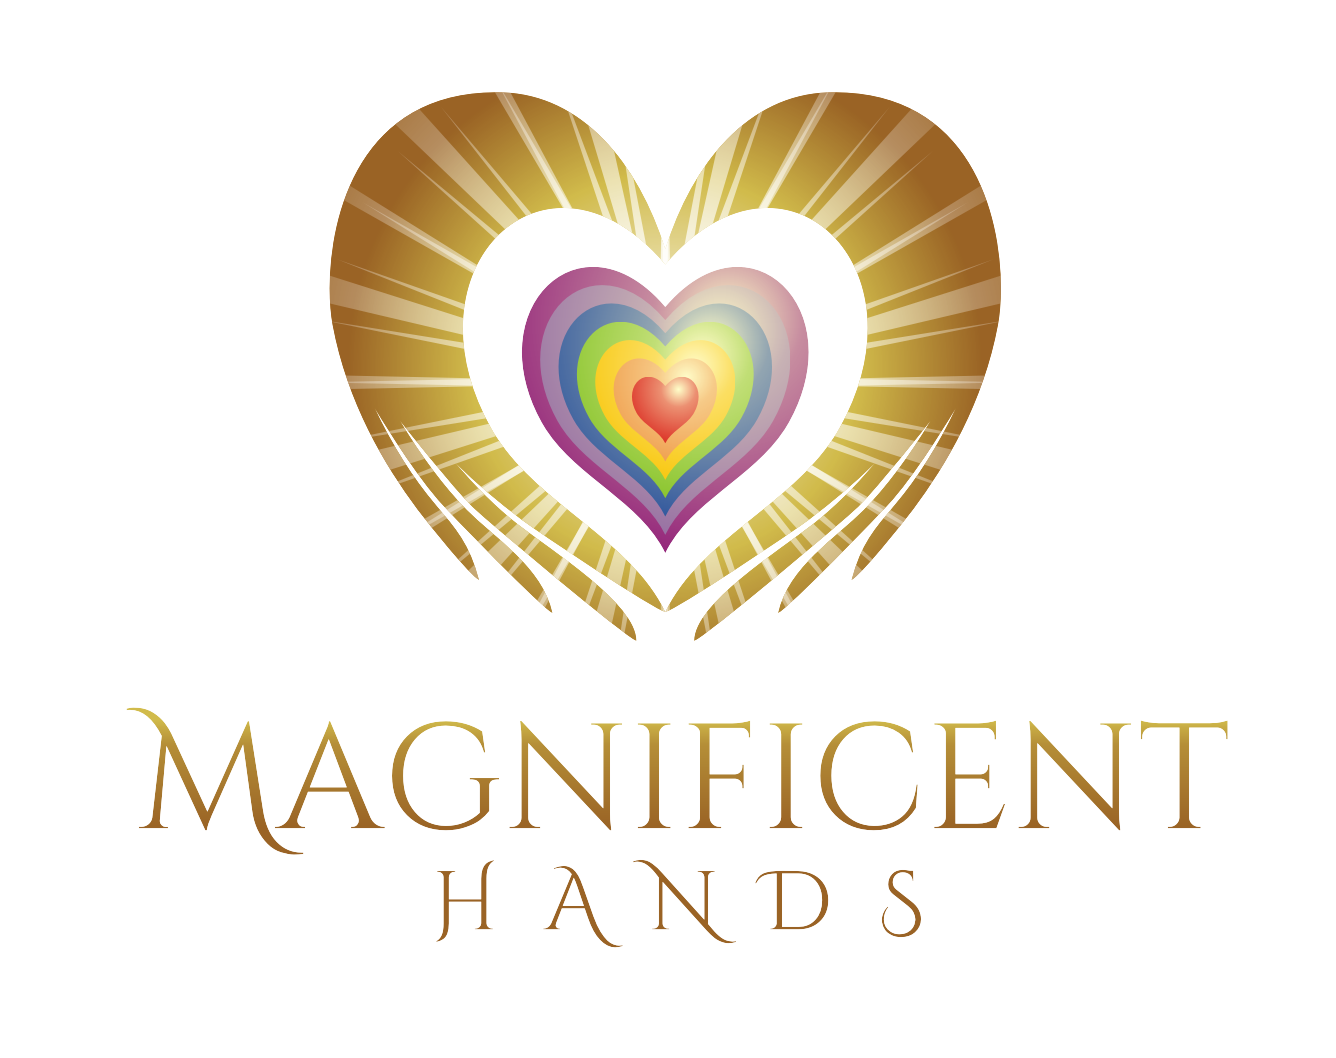 Logo that conveys simple healing hands with light illumination and flower or triangle or heart